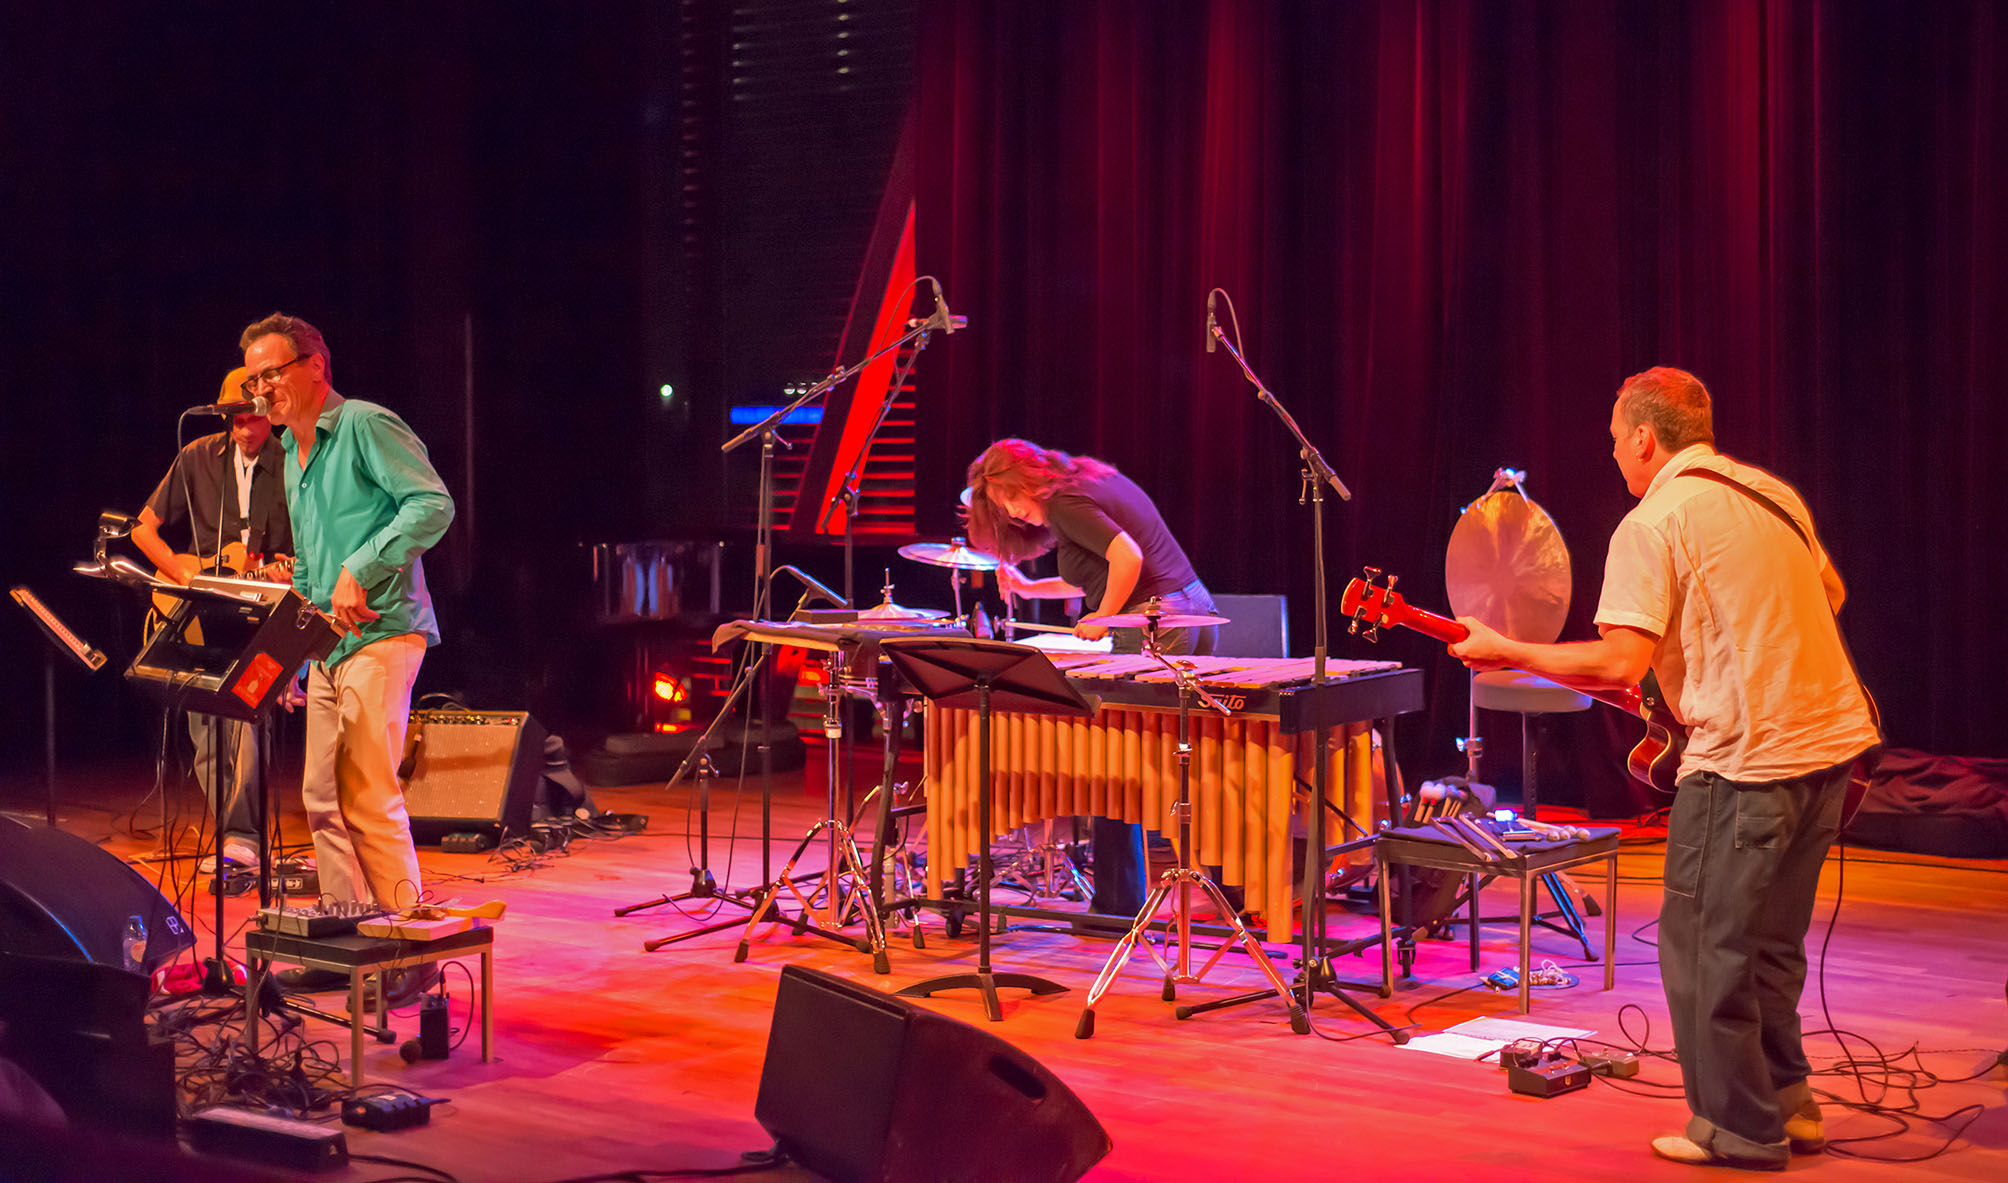 Rubatong at Dutch Jazz & World Meeting 2012